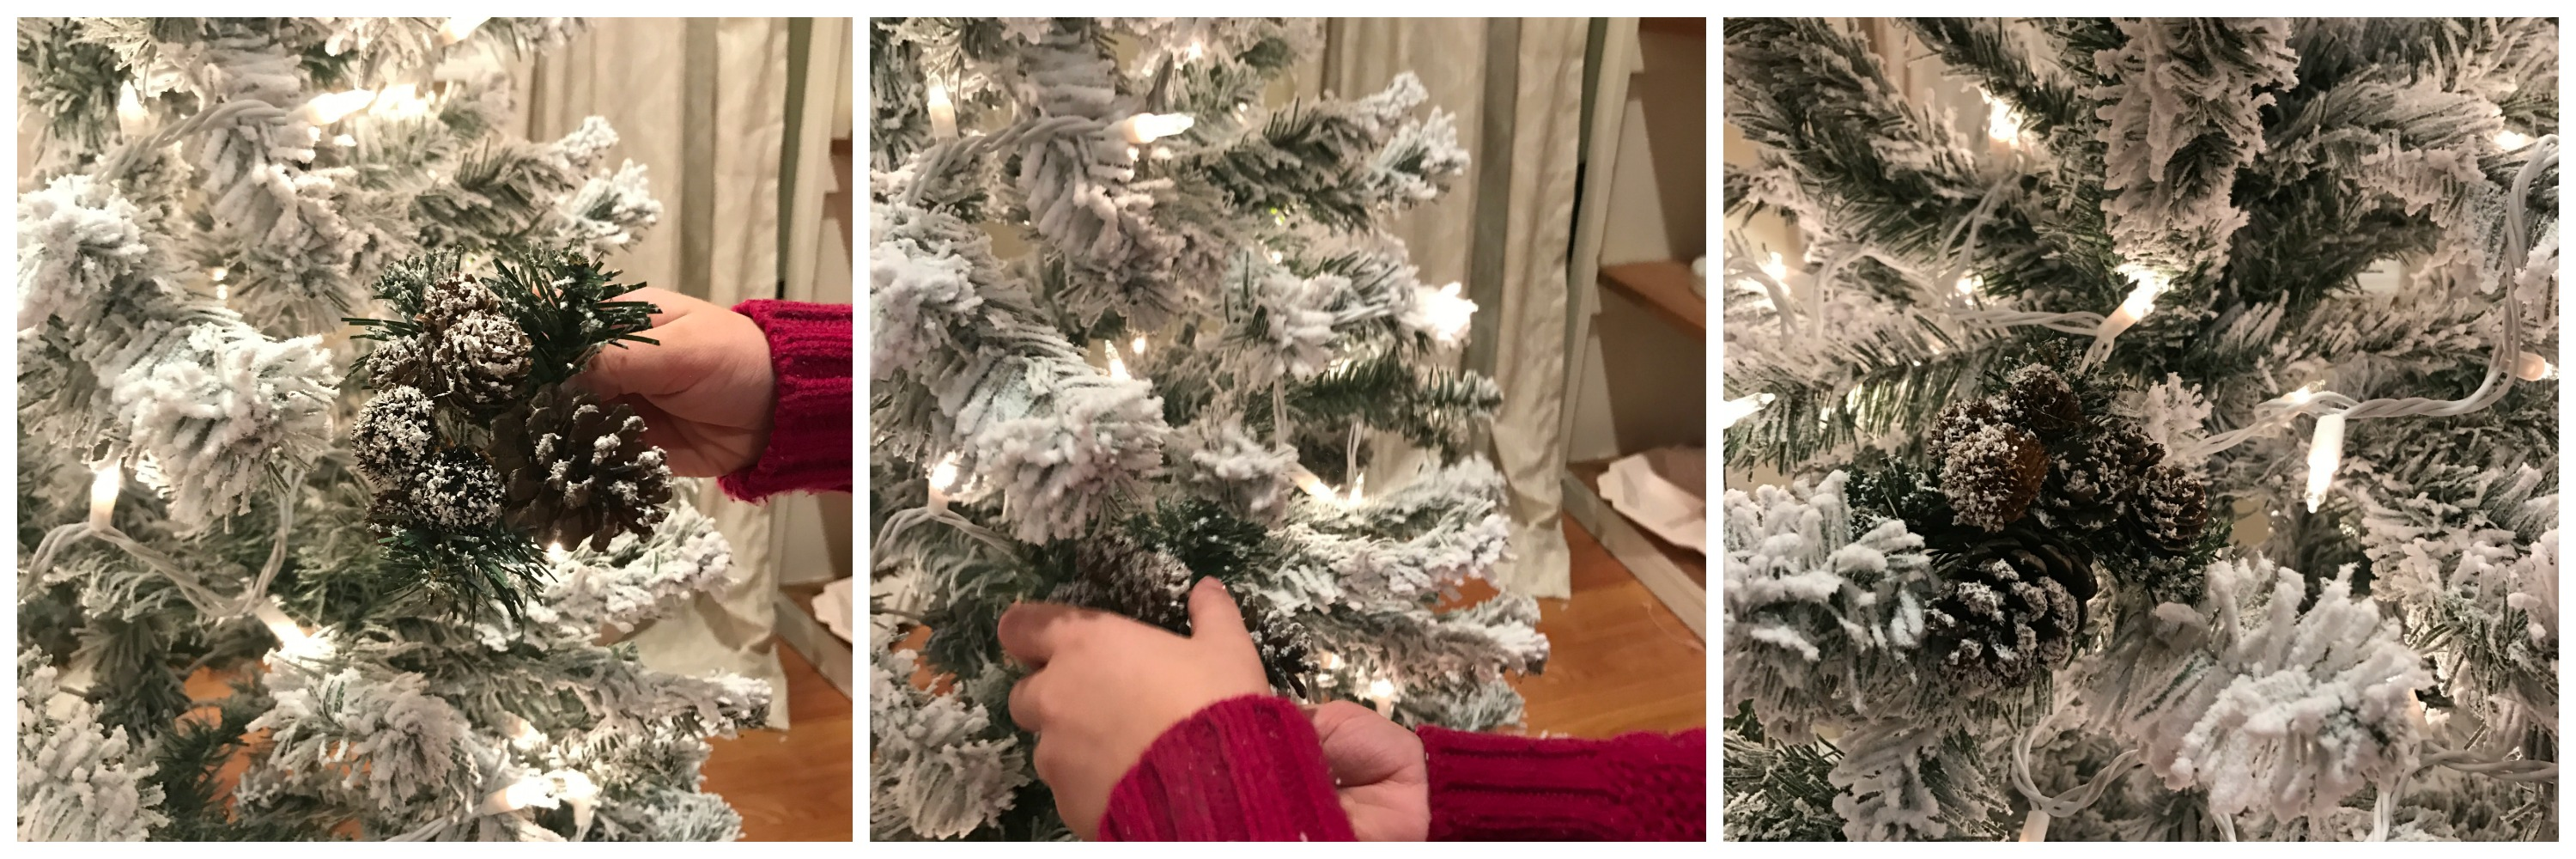 White Christmas Create A 6' Flocked Christmas Tree For Under 40  - 6 White Christmas Tree